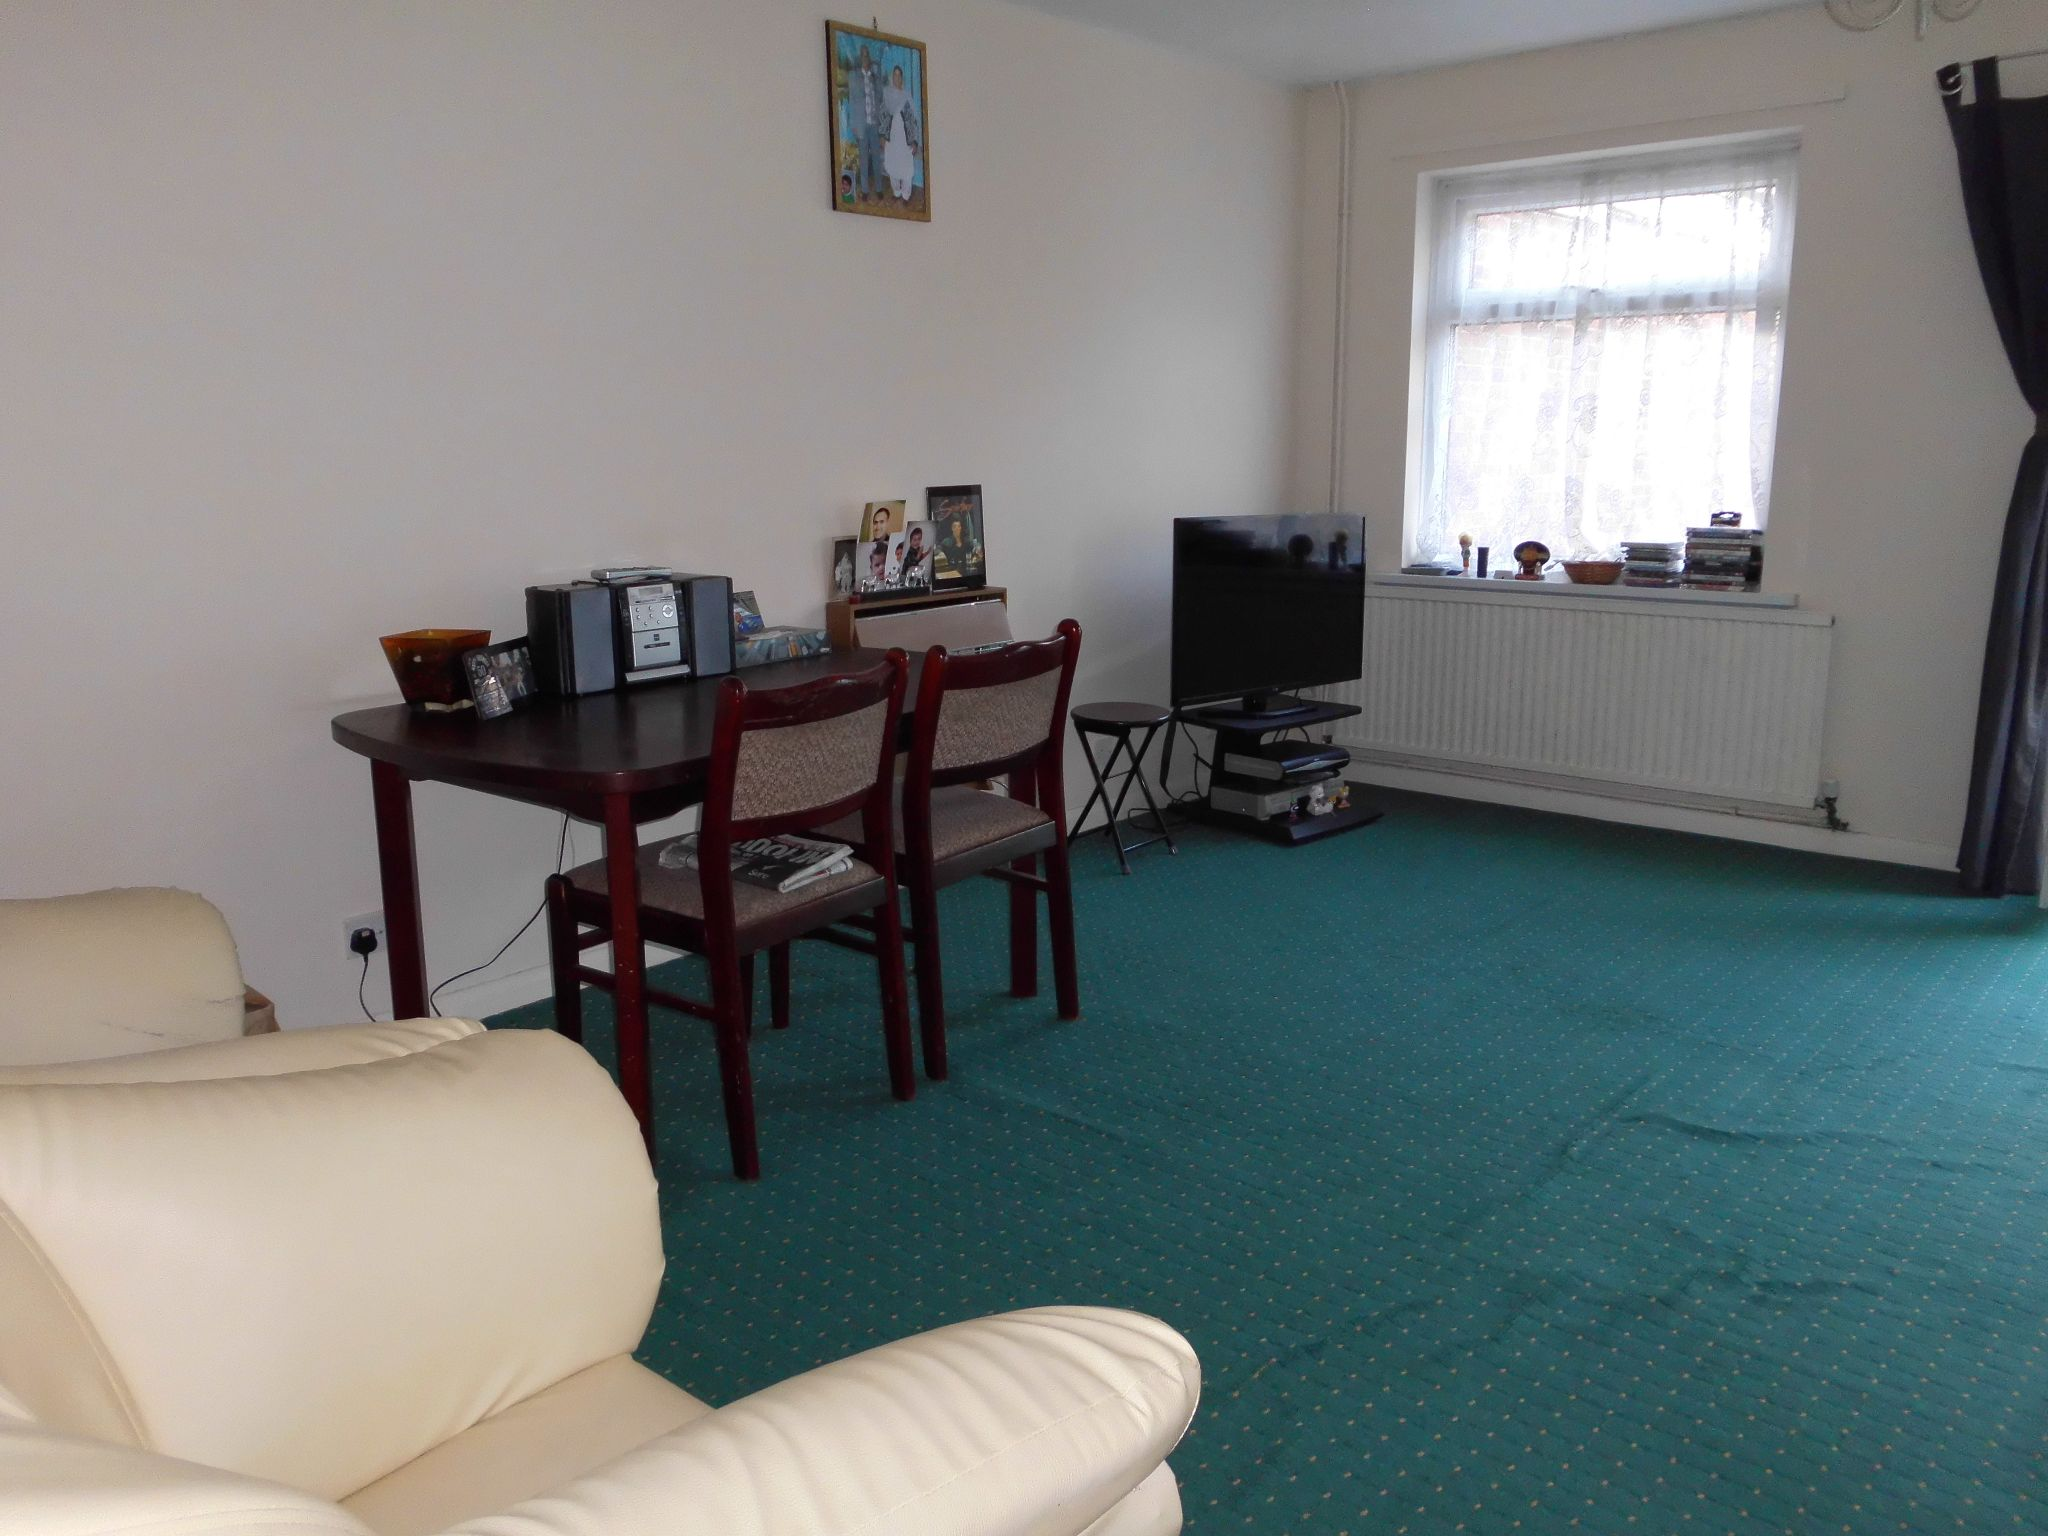 3 bedroom semi-detached house For Sale in Leicester - Photograph 4.